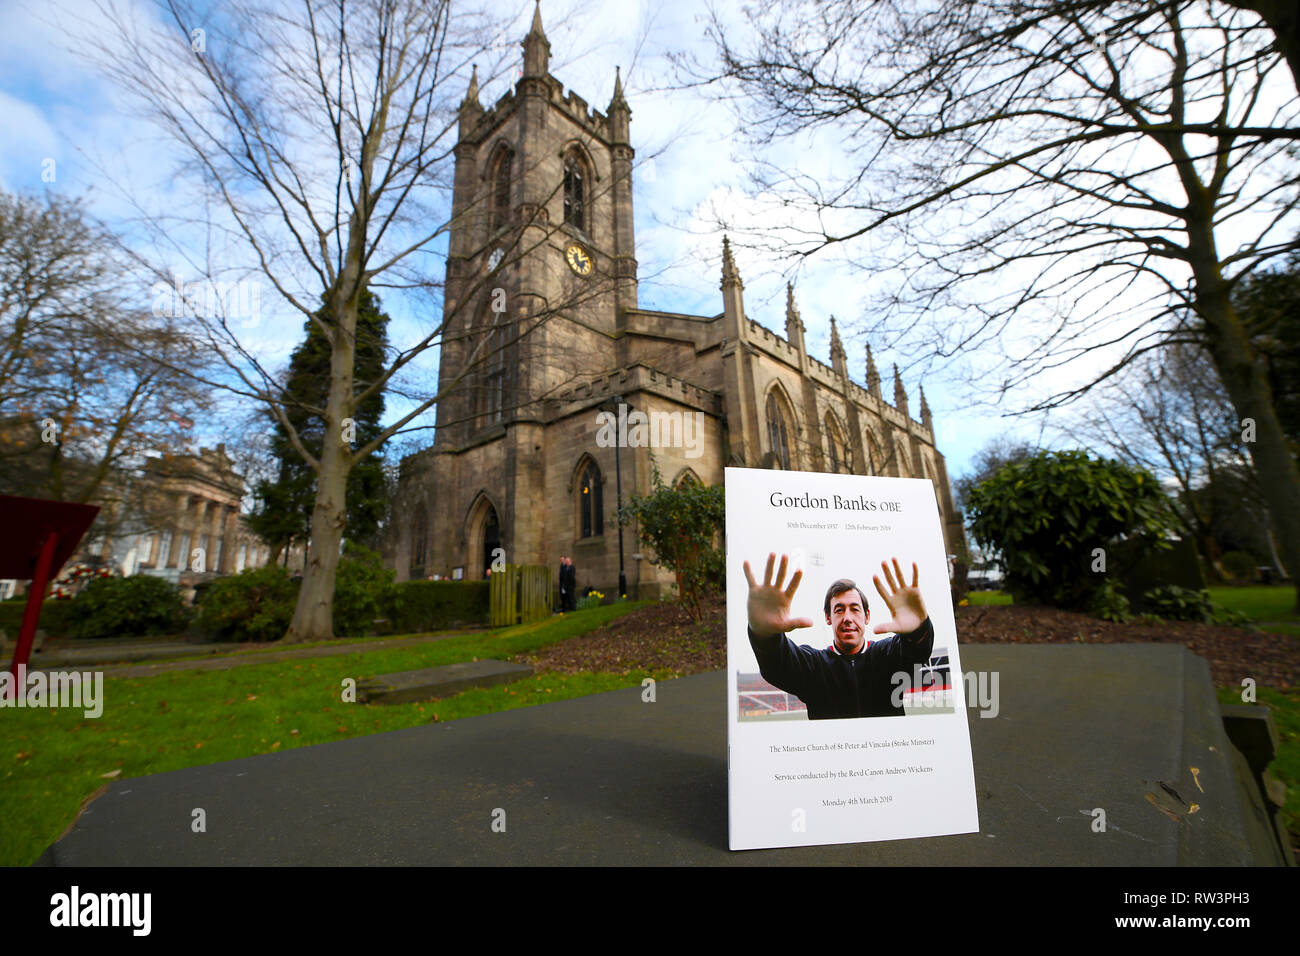 General view of the Order of Service ahead of the funeral service for Gordon Banks at Stoke Minster. - Stock Image